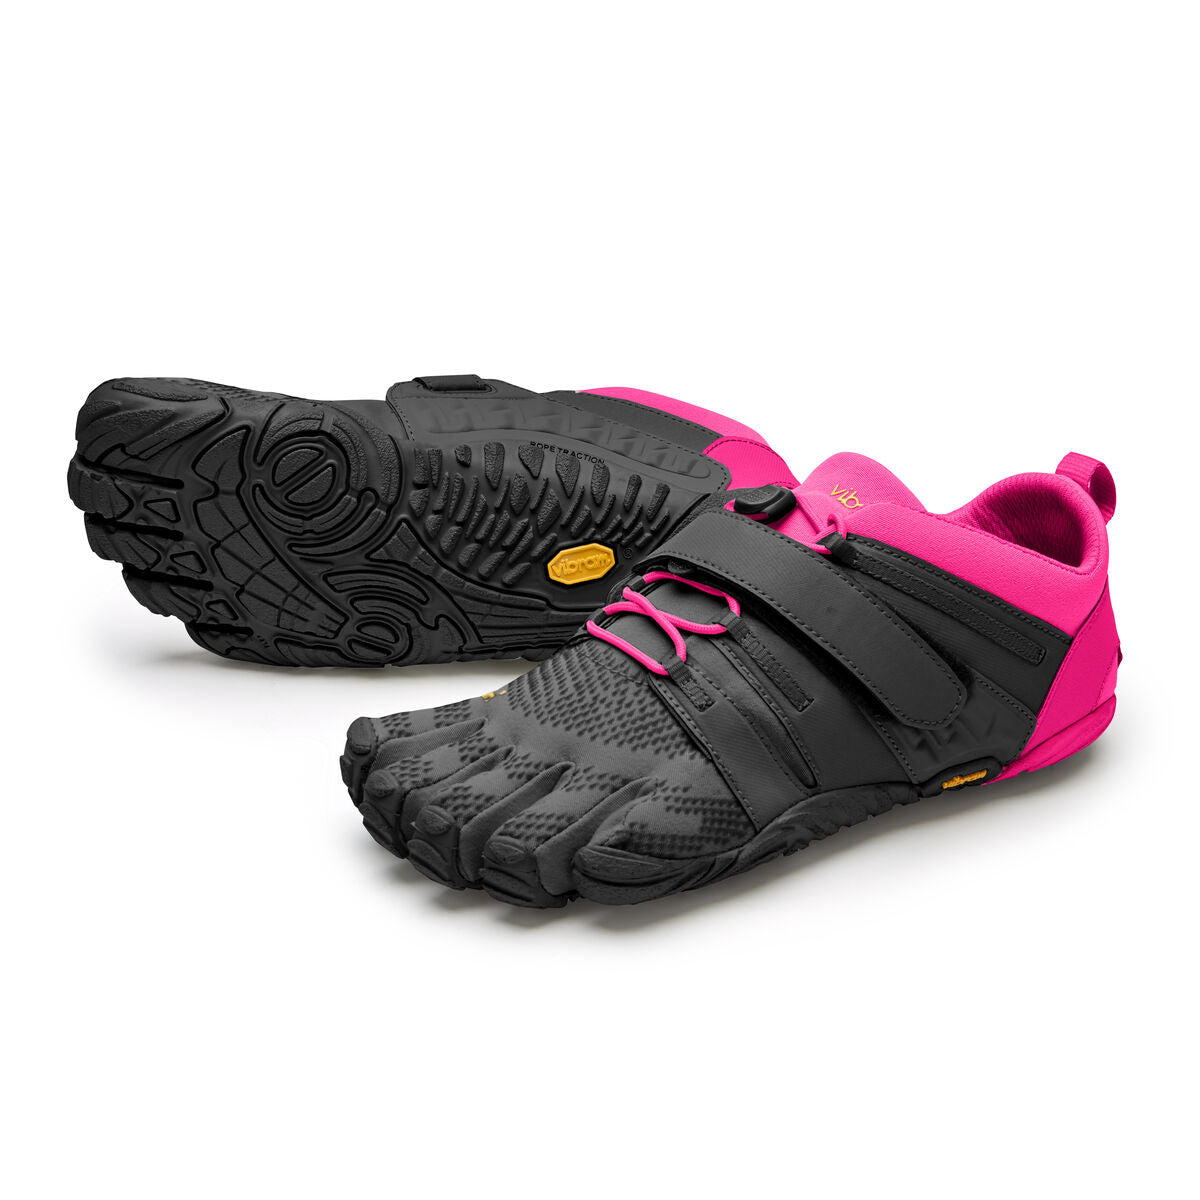 Women's Vibram Five Fingers V-Train 2.0 Fitness and Training Shoe in Black/Pink from the front